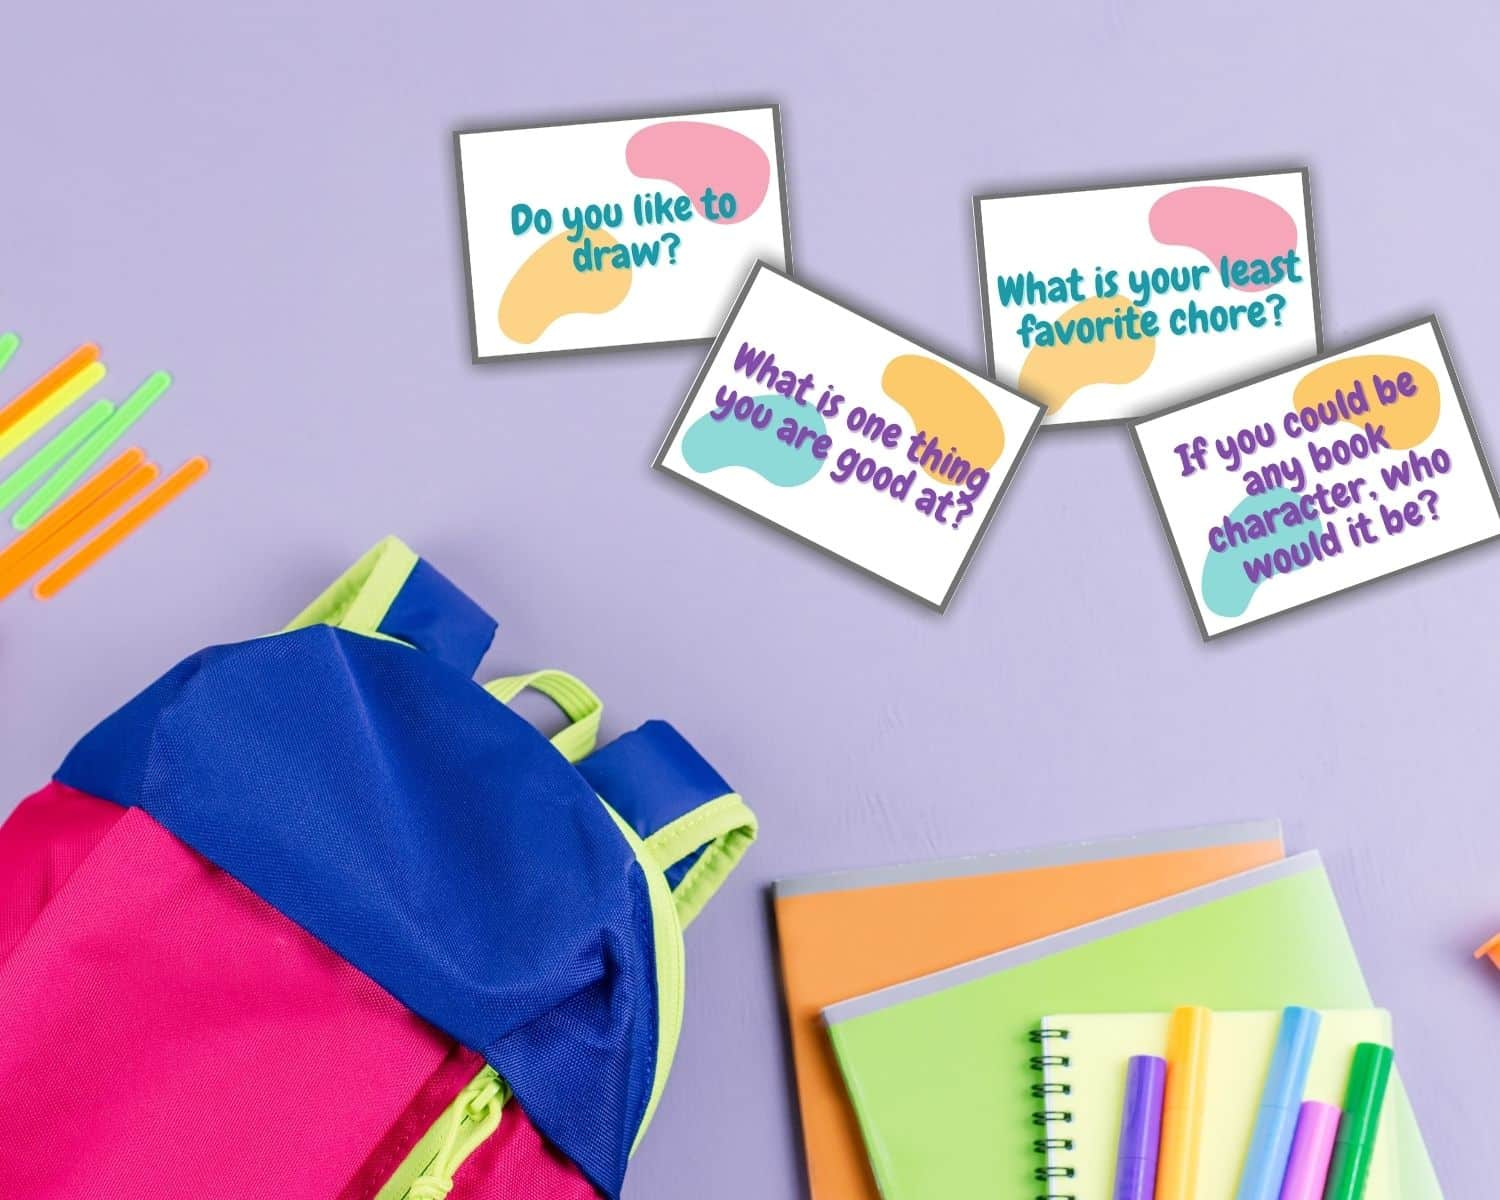 Kids conversation starters lay near a colorful backpack and notebooks